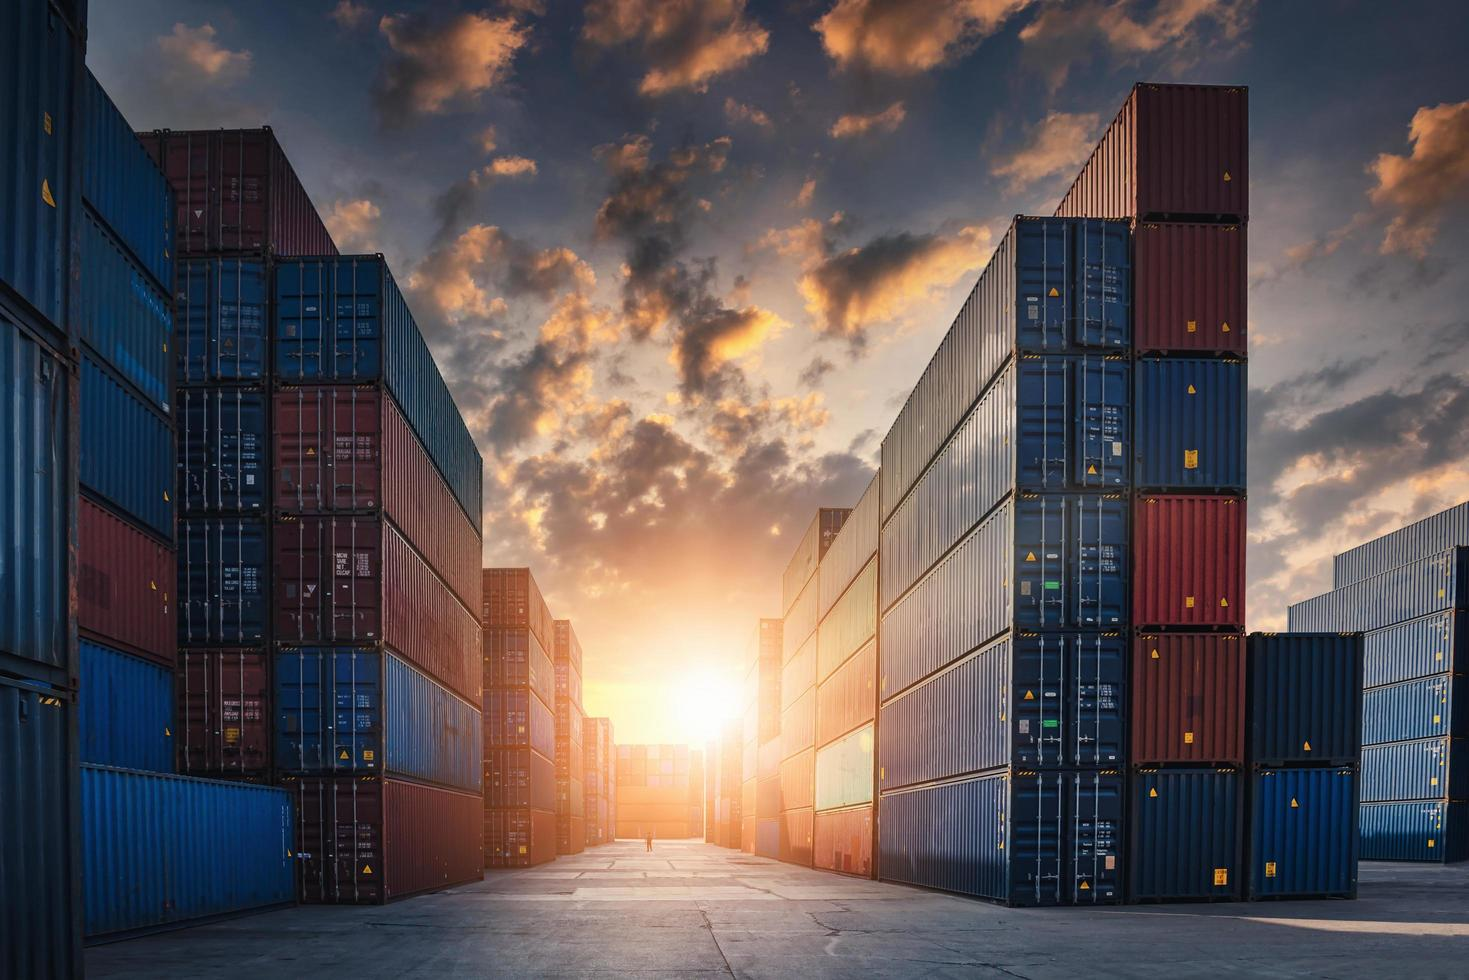 Container cargo port ship yard  photo